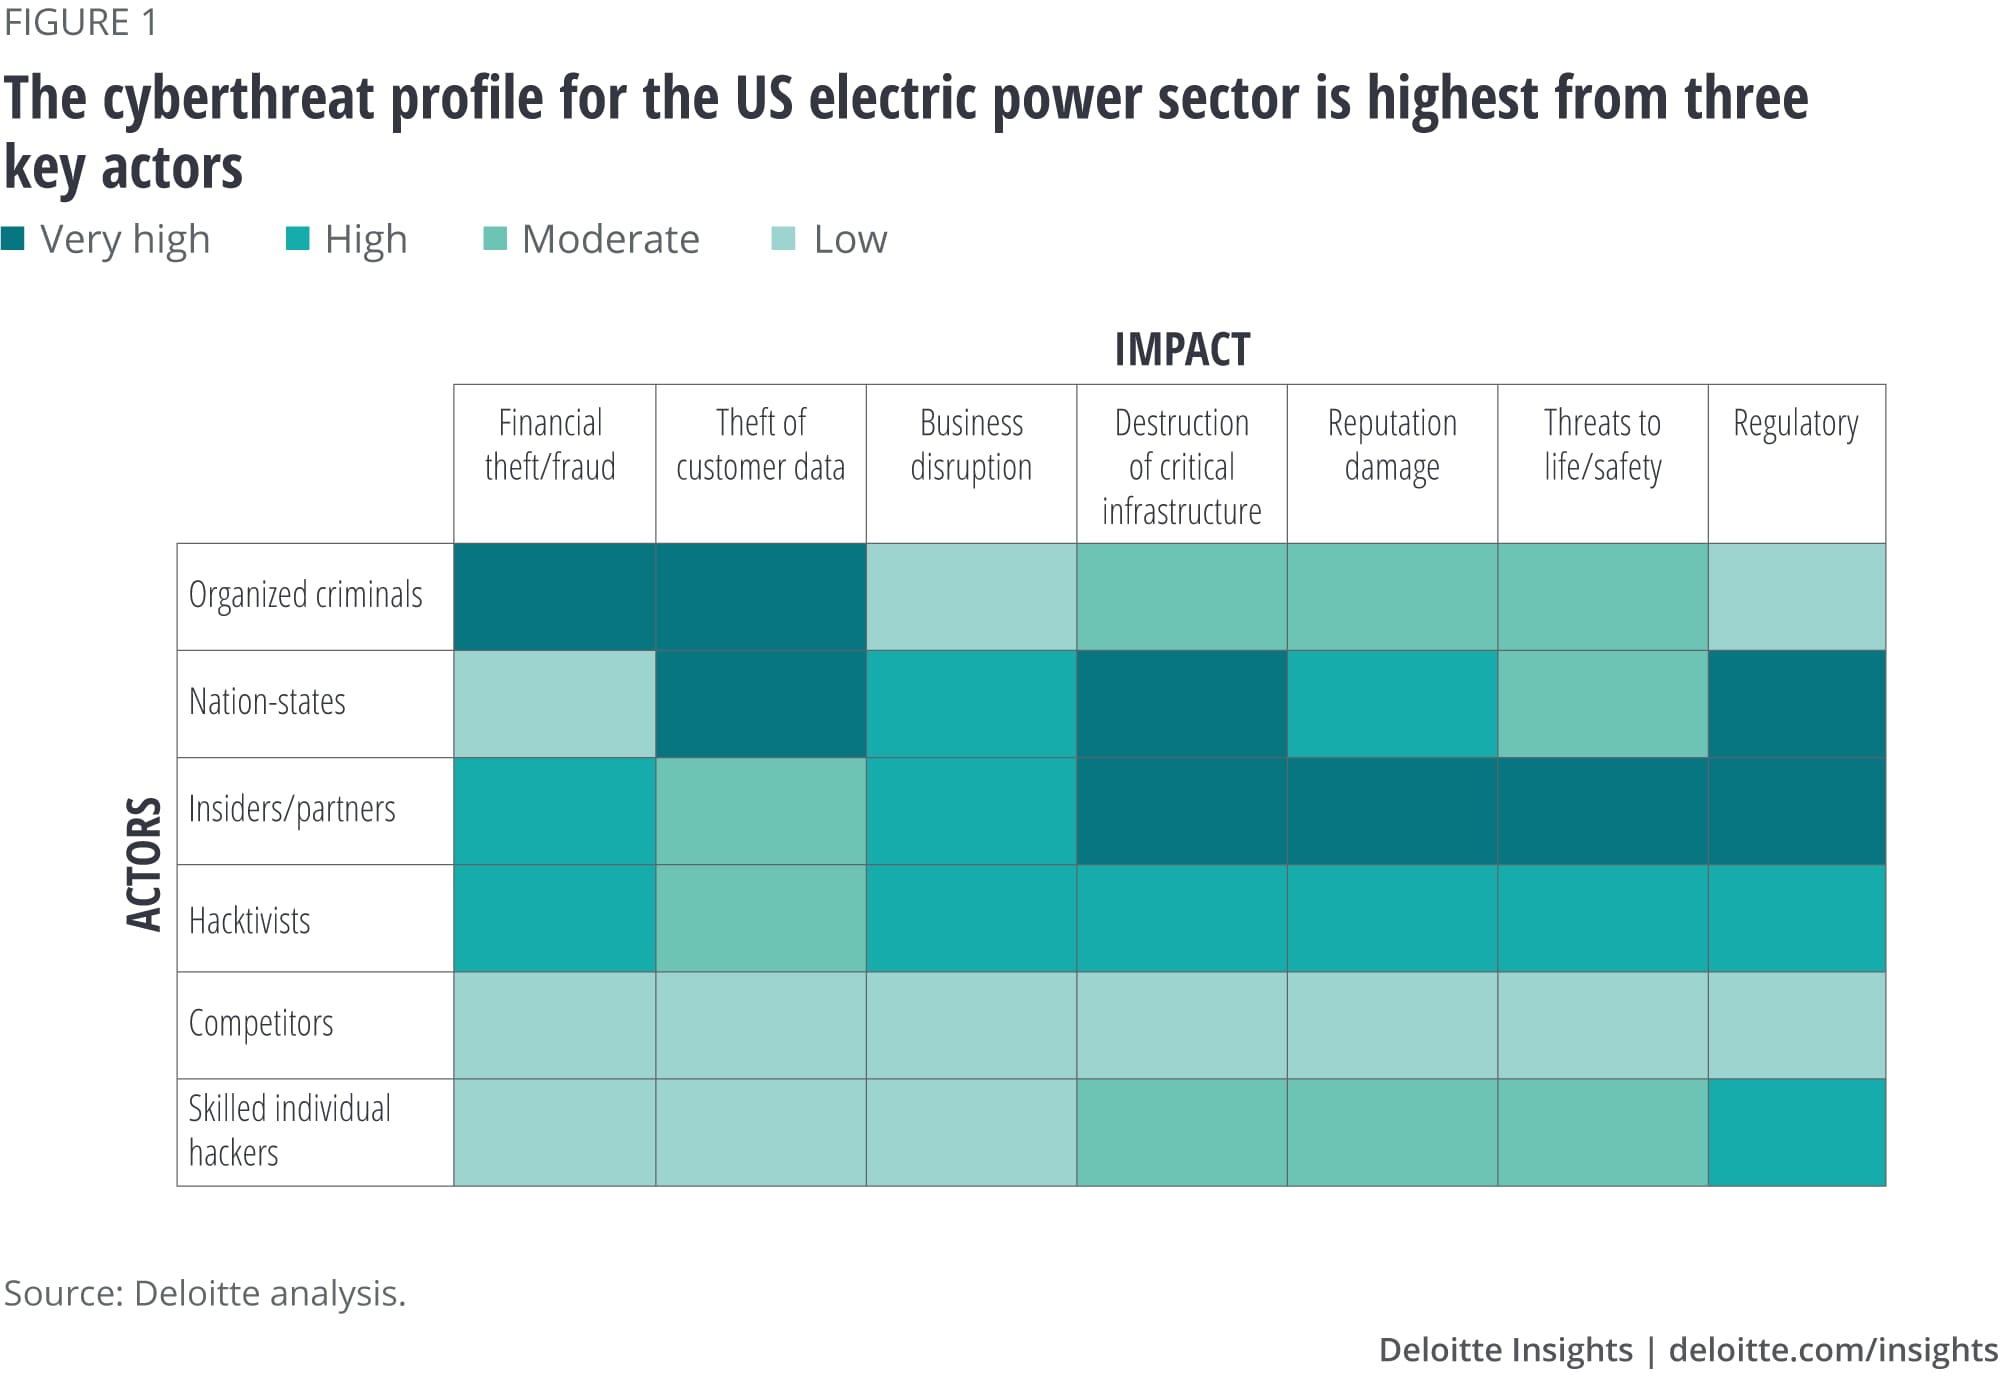 The cyberthreat profile for the US electric power sector is highest from three key actors